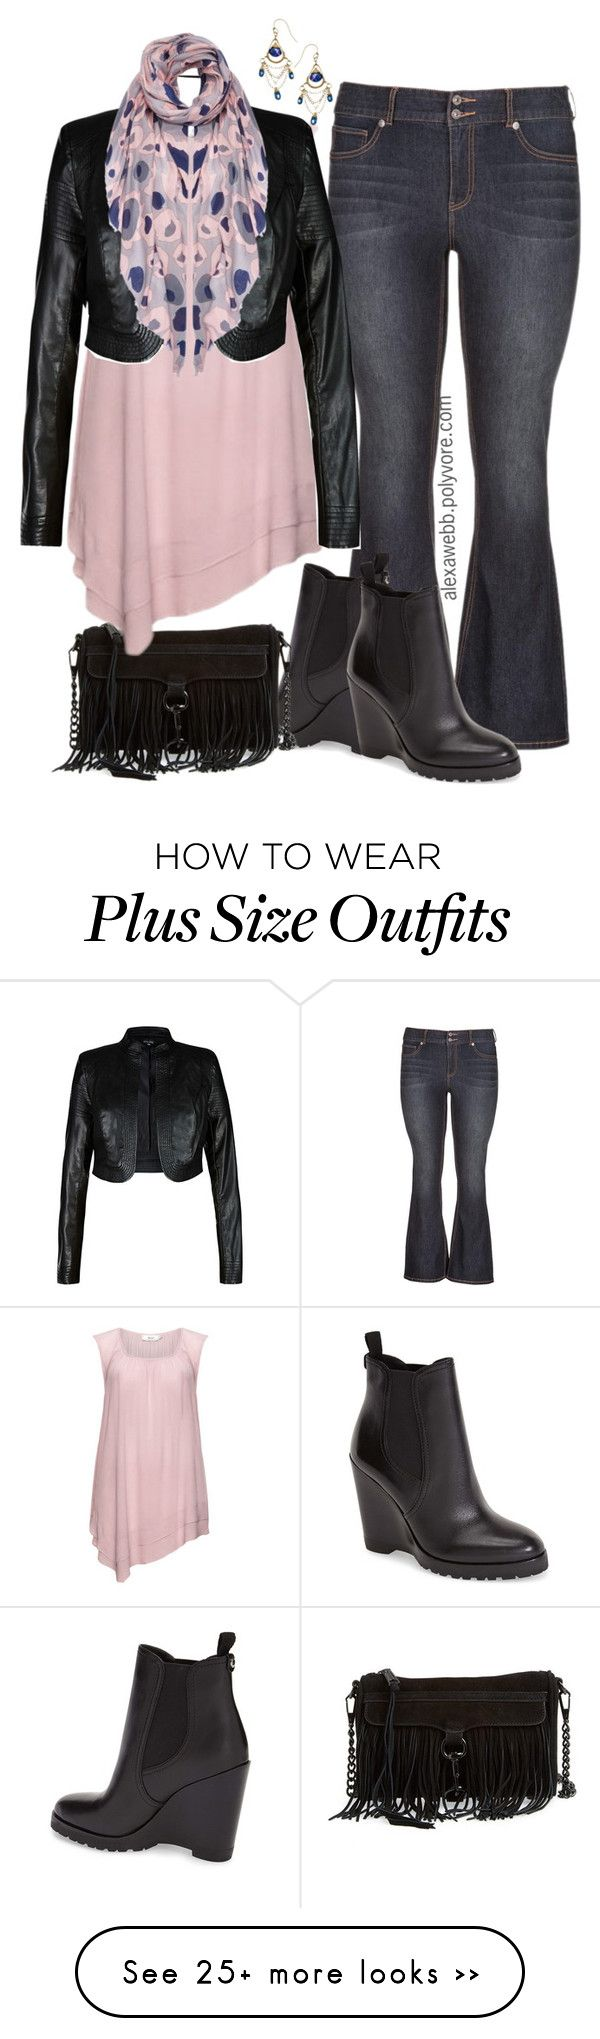 """""""Plus Size Flares"""" by alexawebb on Polyvore featuring maurices, MICHAEL Michael Kors, Rebecca Minkoff, Zizzi, City Chic, Lipsy and Urban Posh"""